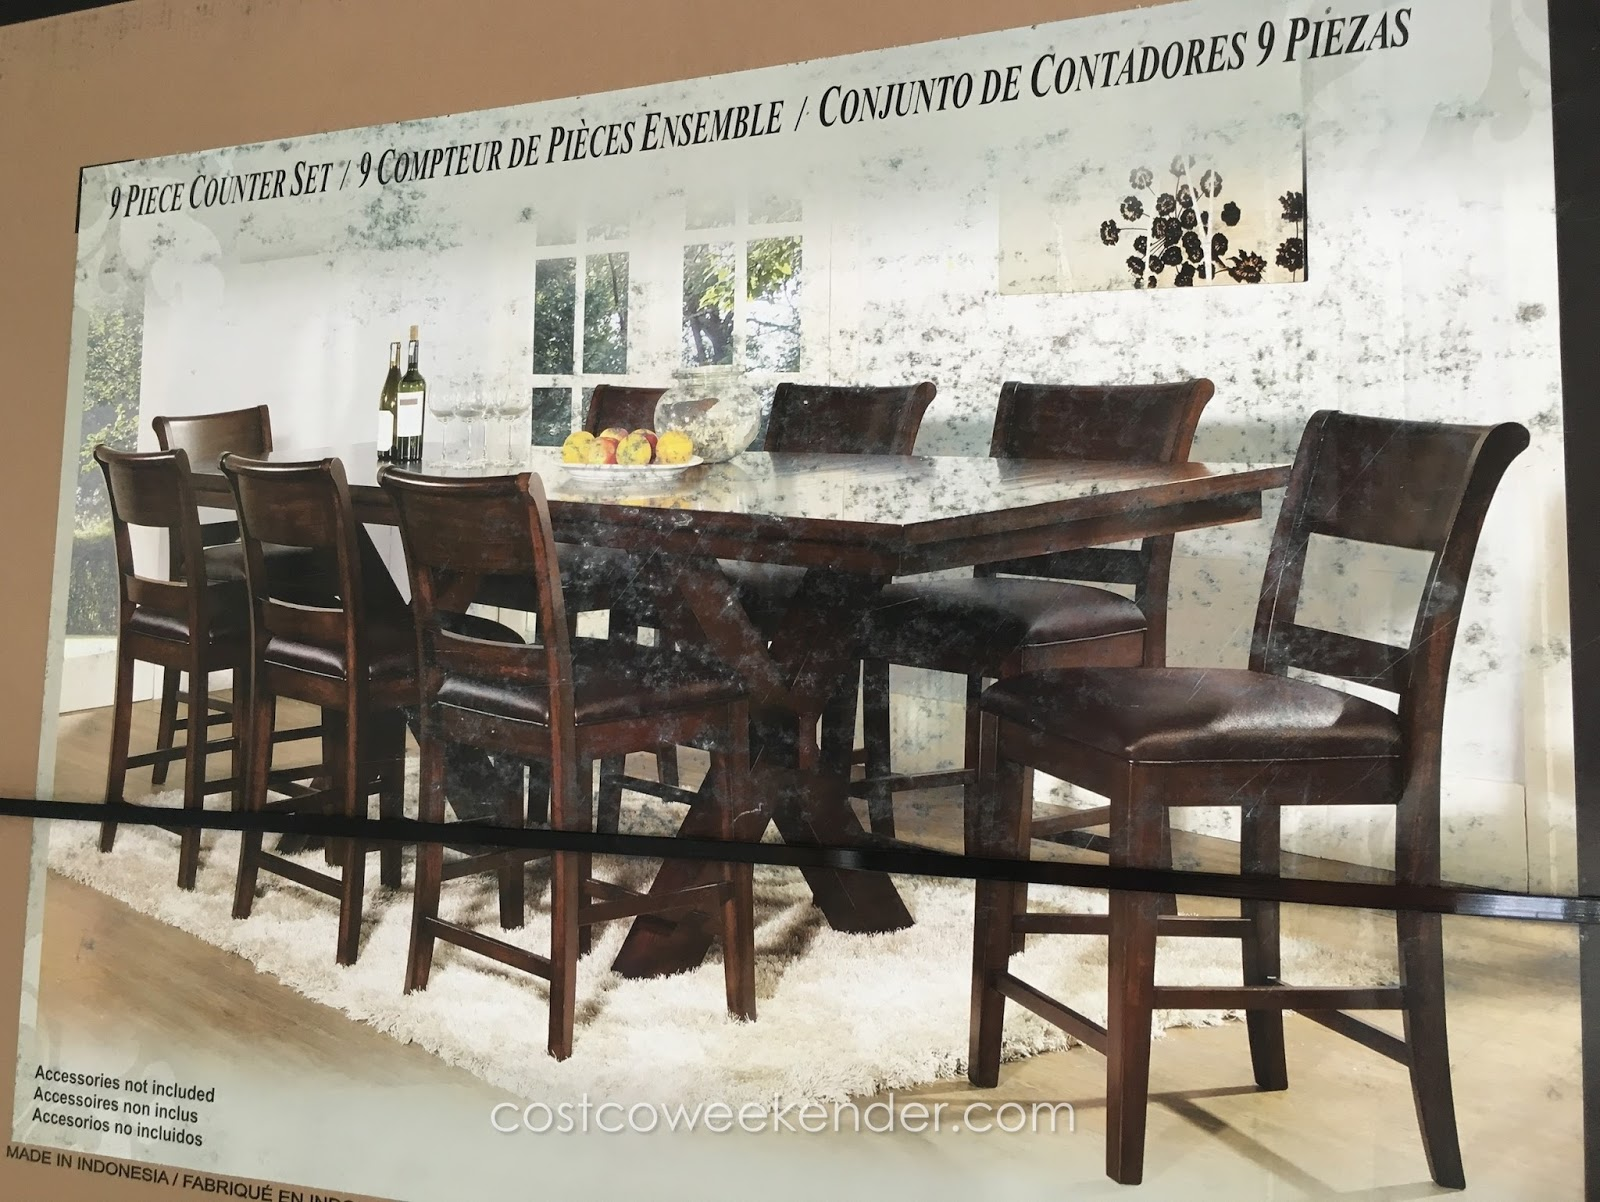 Hillsdale furniture 9 piece counter height dining set costco weekender - Costco dining room set ...